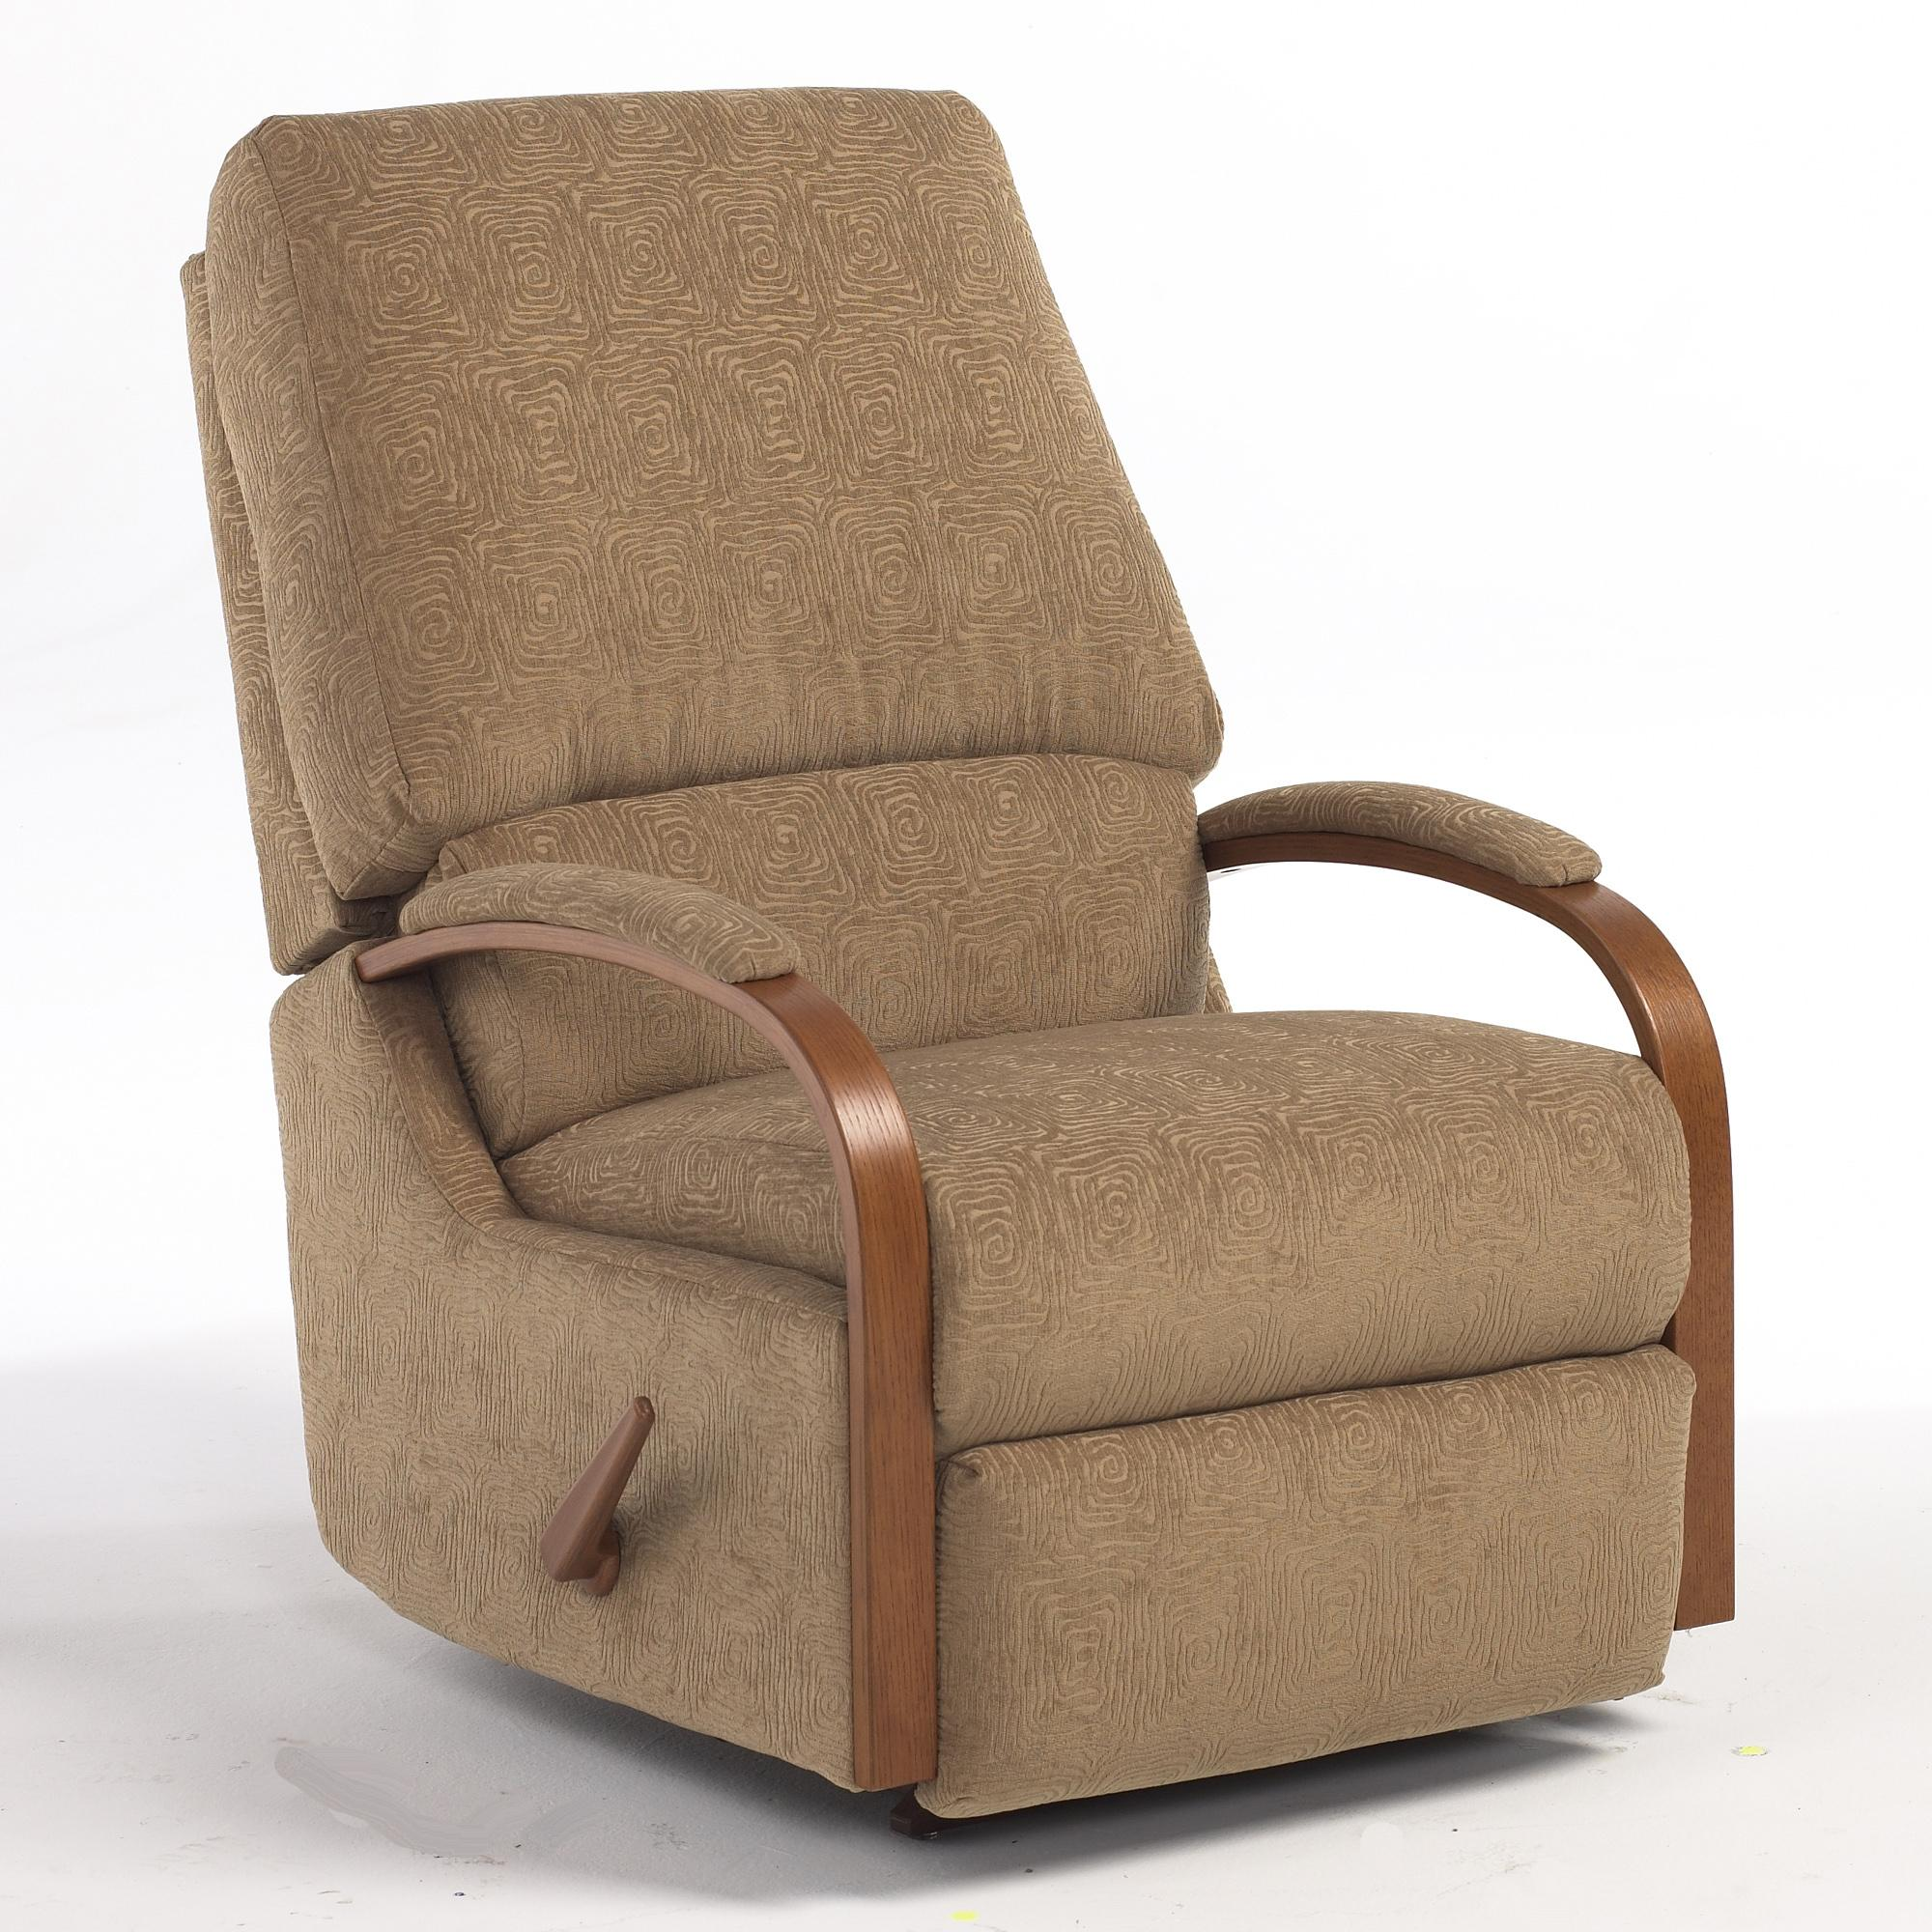 Recliner Rocking Chair Pike Swivel Rocking Reclining Chair By Best Home